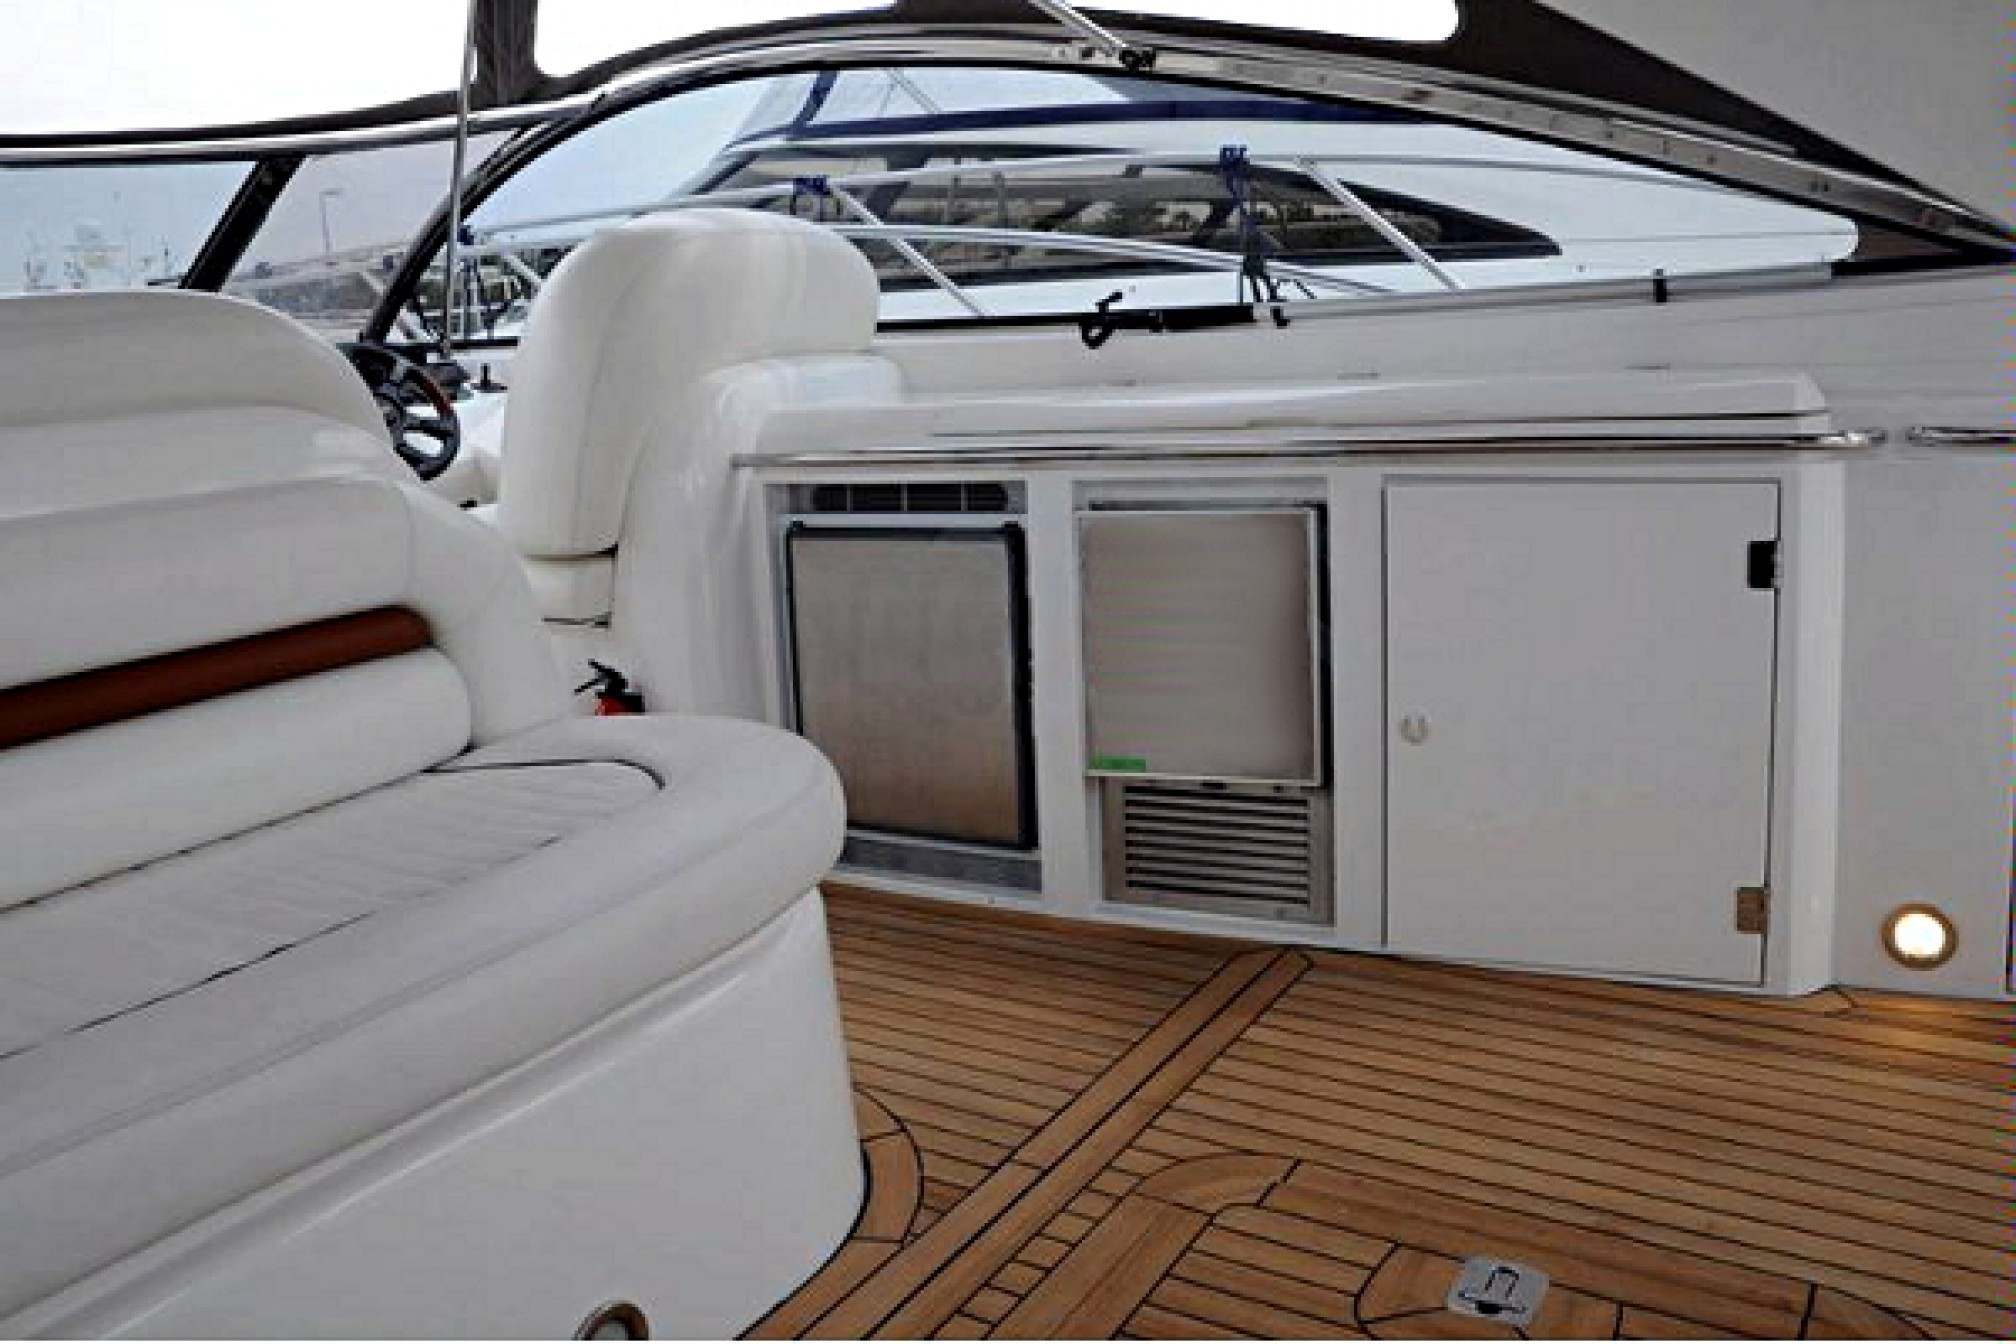 Sunseeker camargue 50 charter motorboat outdoors